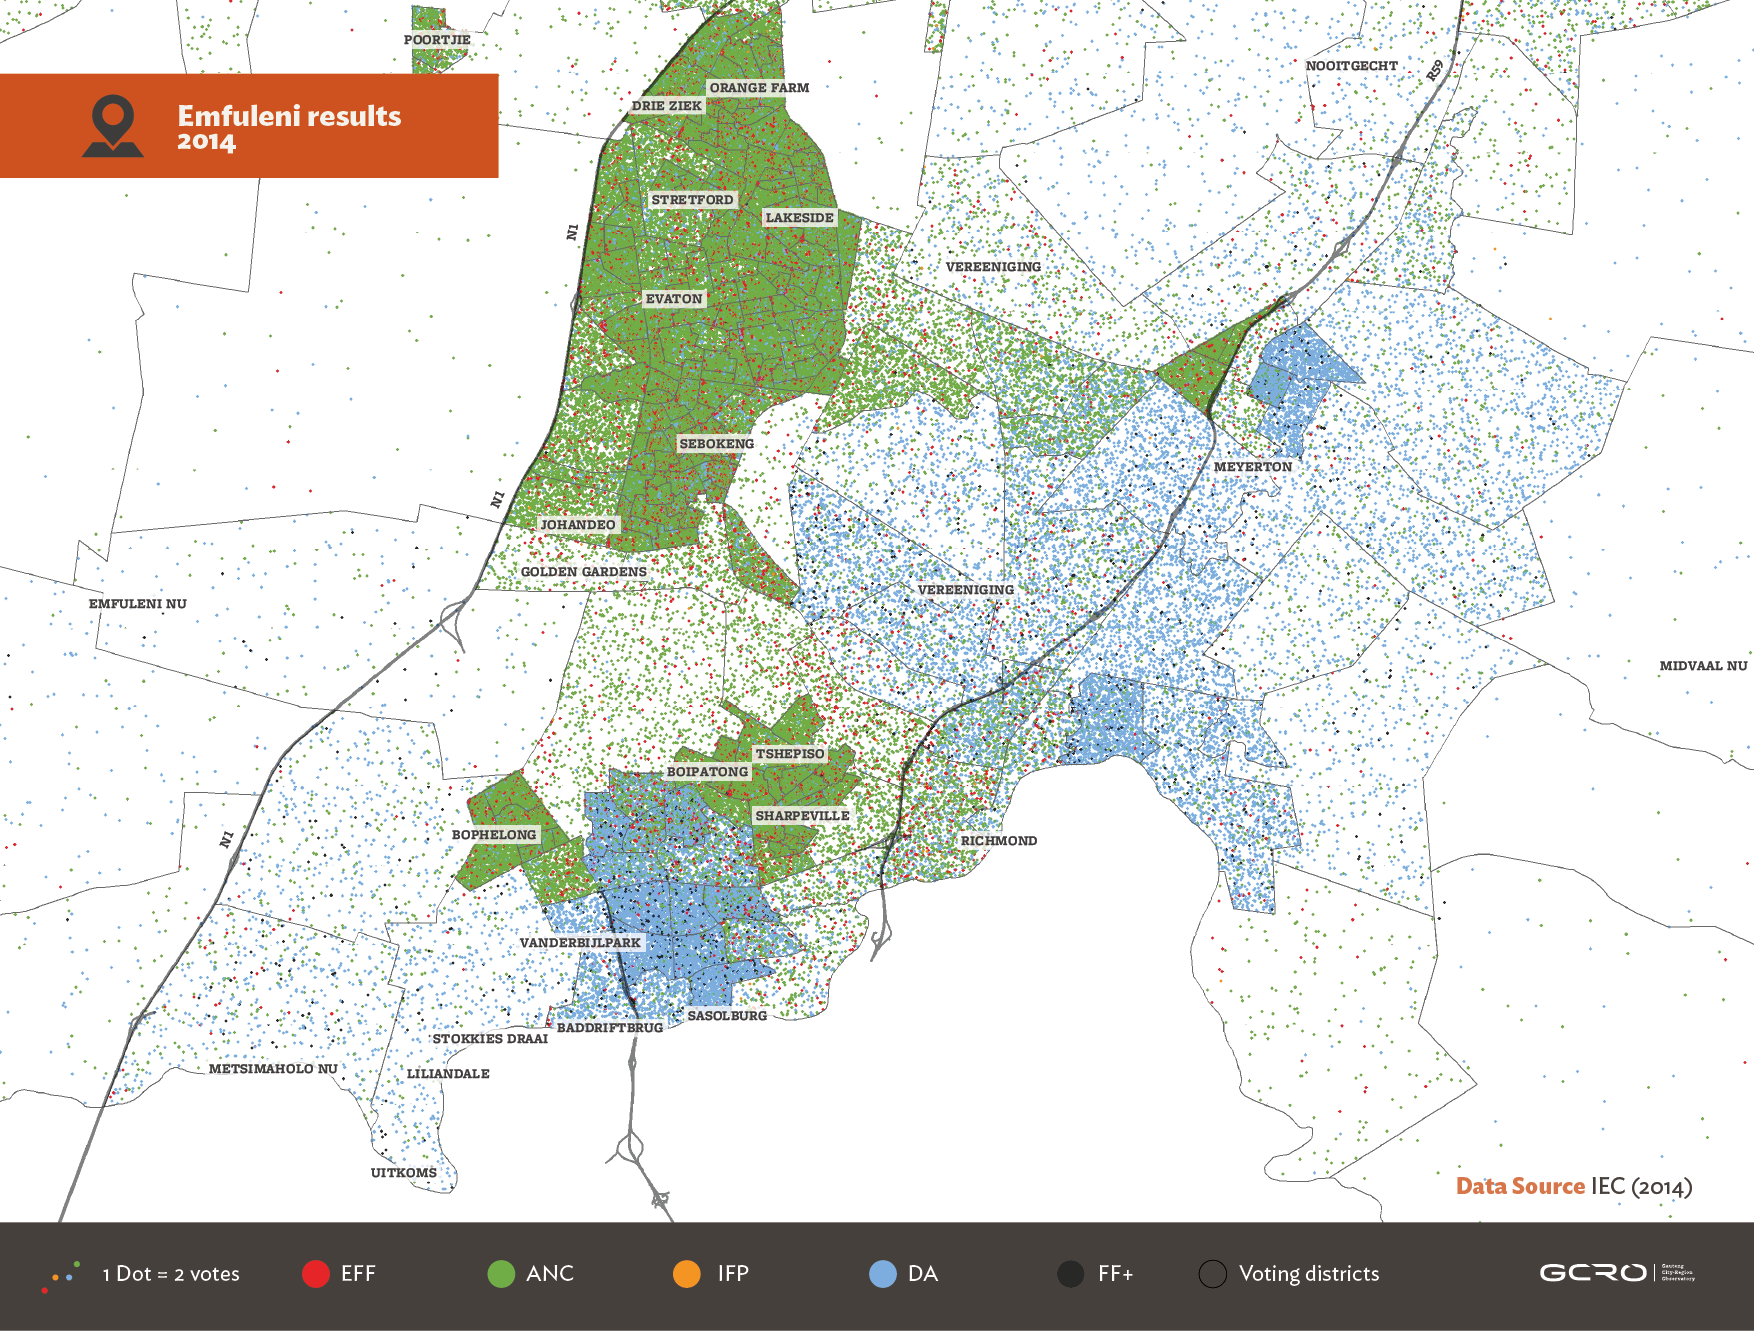 5. Elections 2014_Zoomed in Maps E